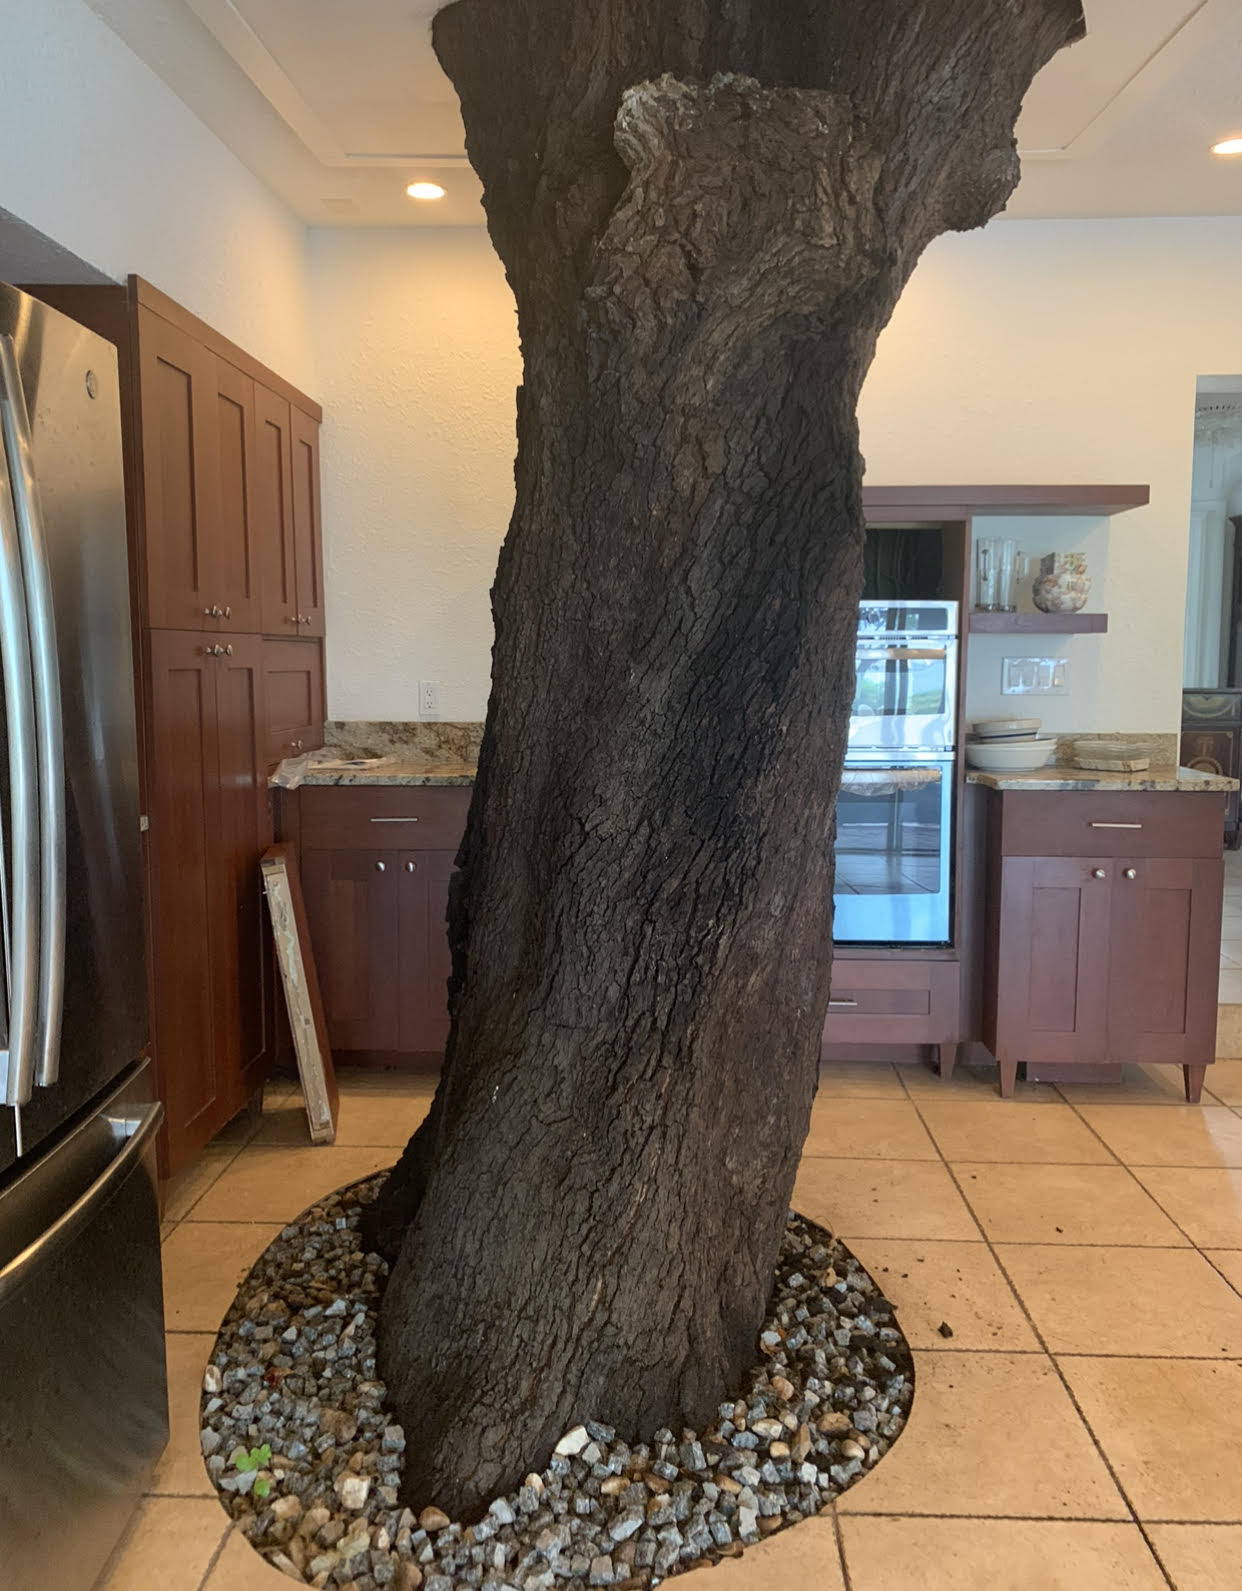 A photo of a kitchen with a large oak tree growing in the center of it.